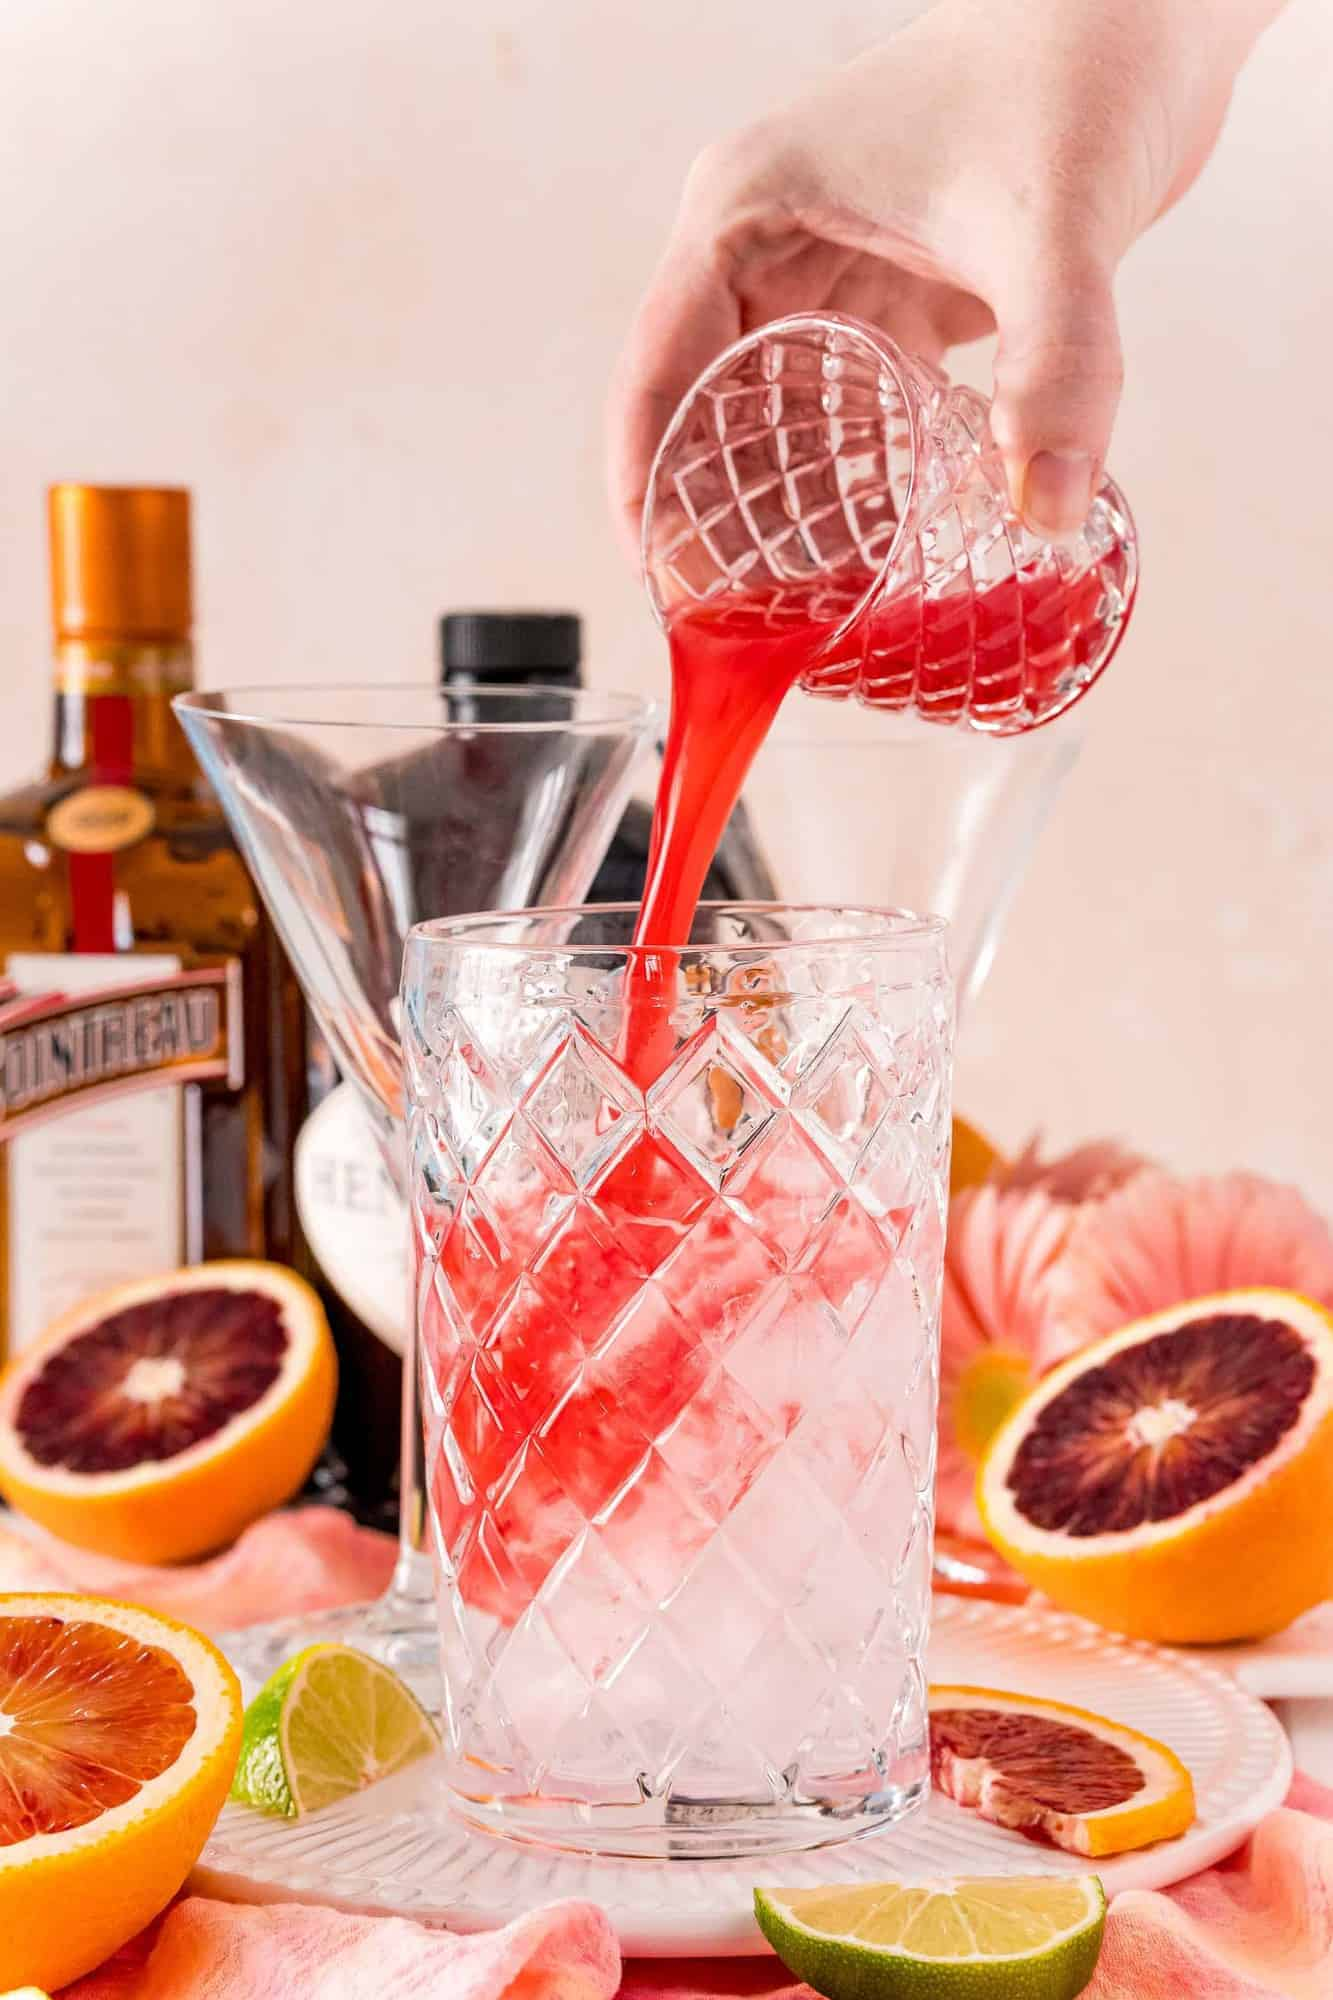 Blood orange juice being poured into a martini glass.